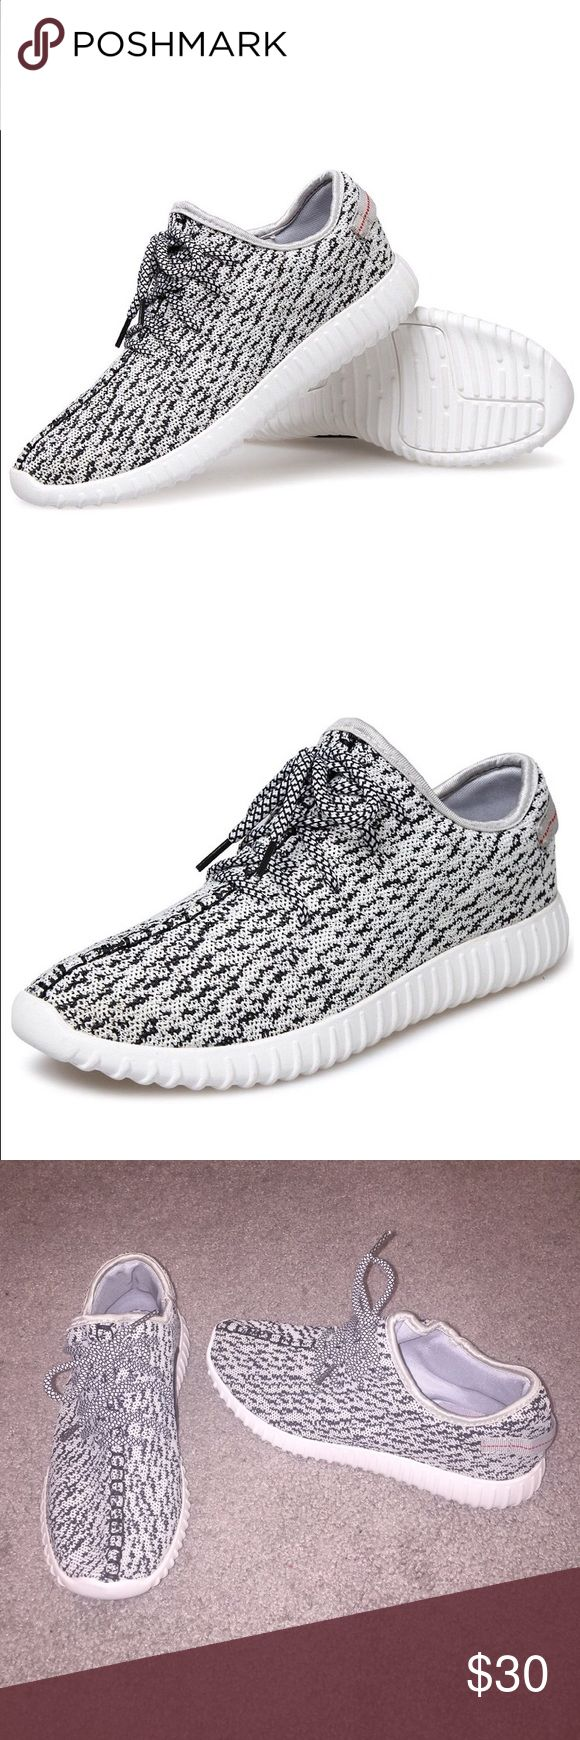 Fake Yeezy's. Too small. Never been worn Fake Yeezy's. Brand new Shoes Sneakers